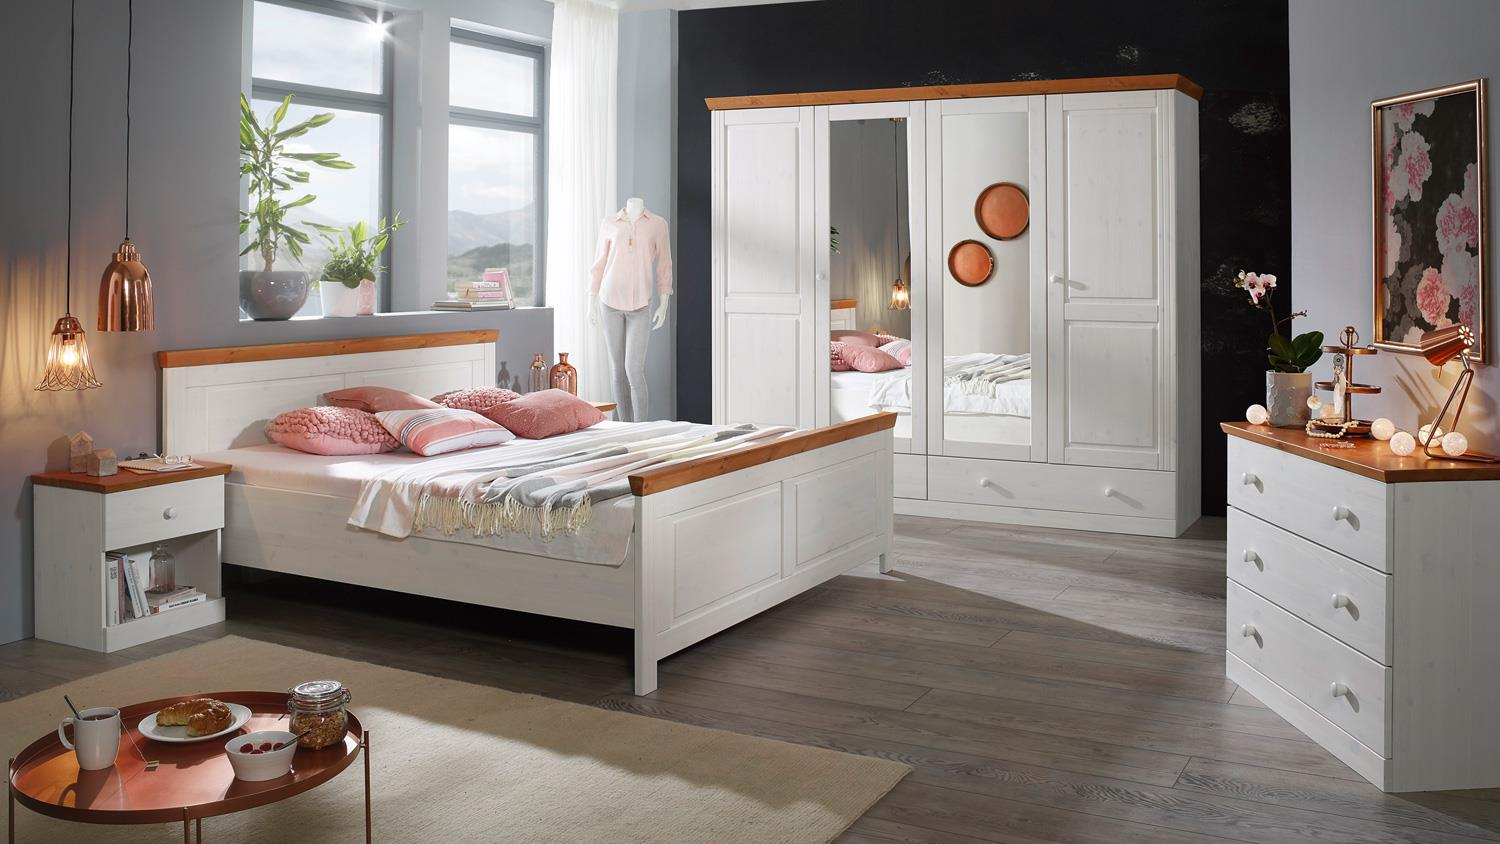 schlafzimmer genia set kiefer massiv wei gewachst honig landhausstil. Black Bedroom Furniture Sets. Home Design Ideas